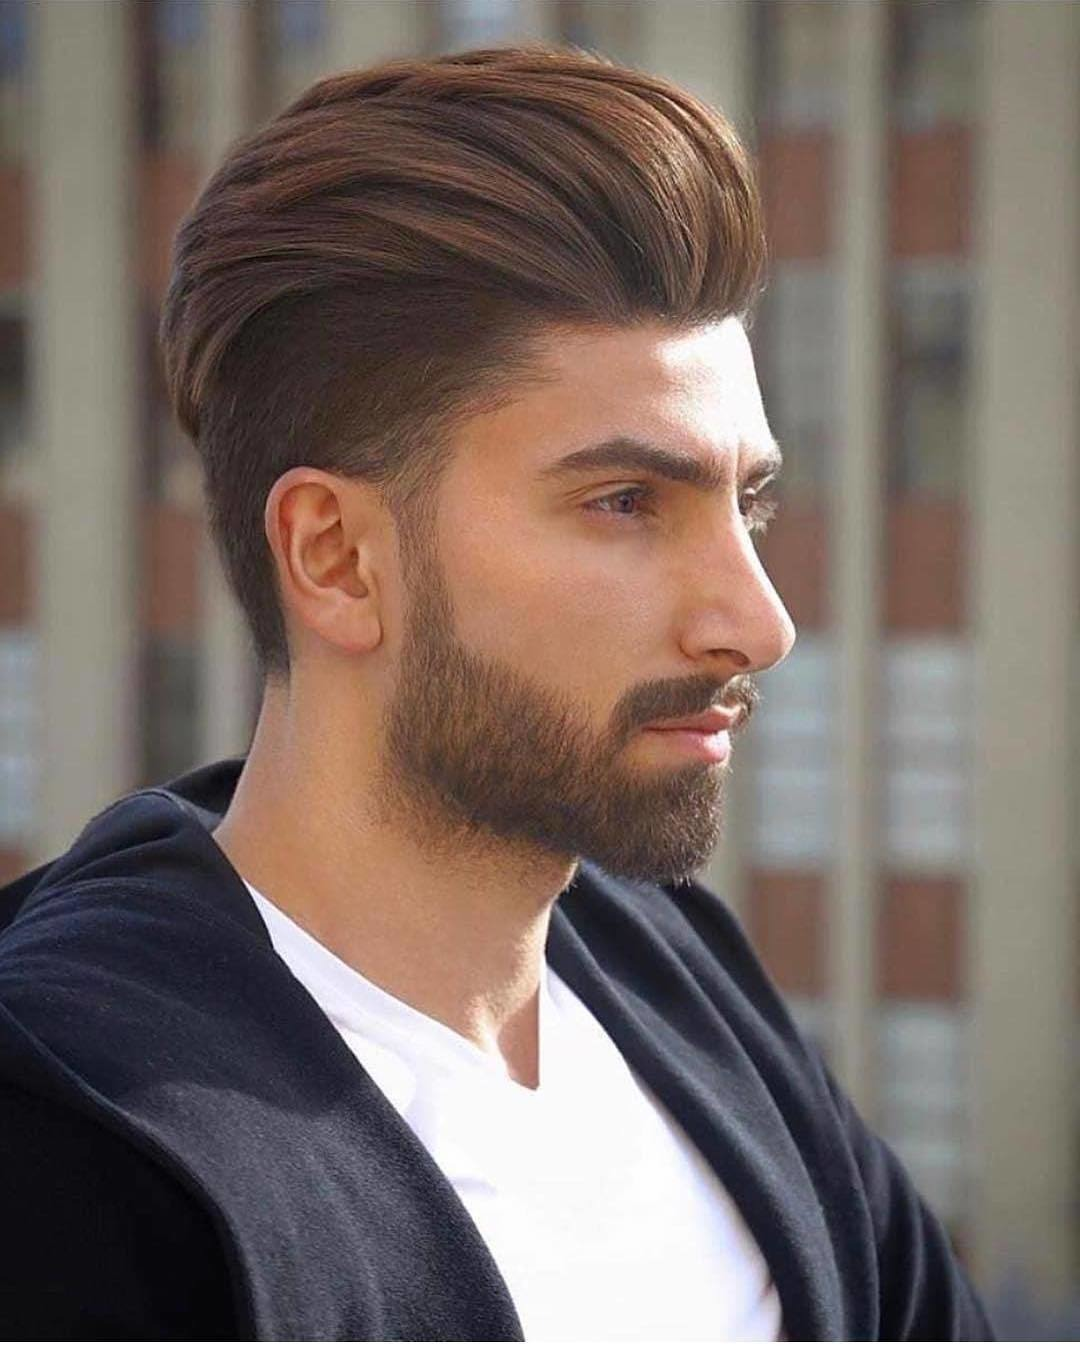 15 Cool Undercut Hairstyles for Men - Men's Hairstyles